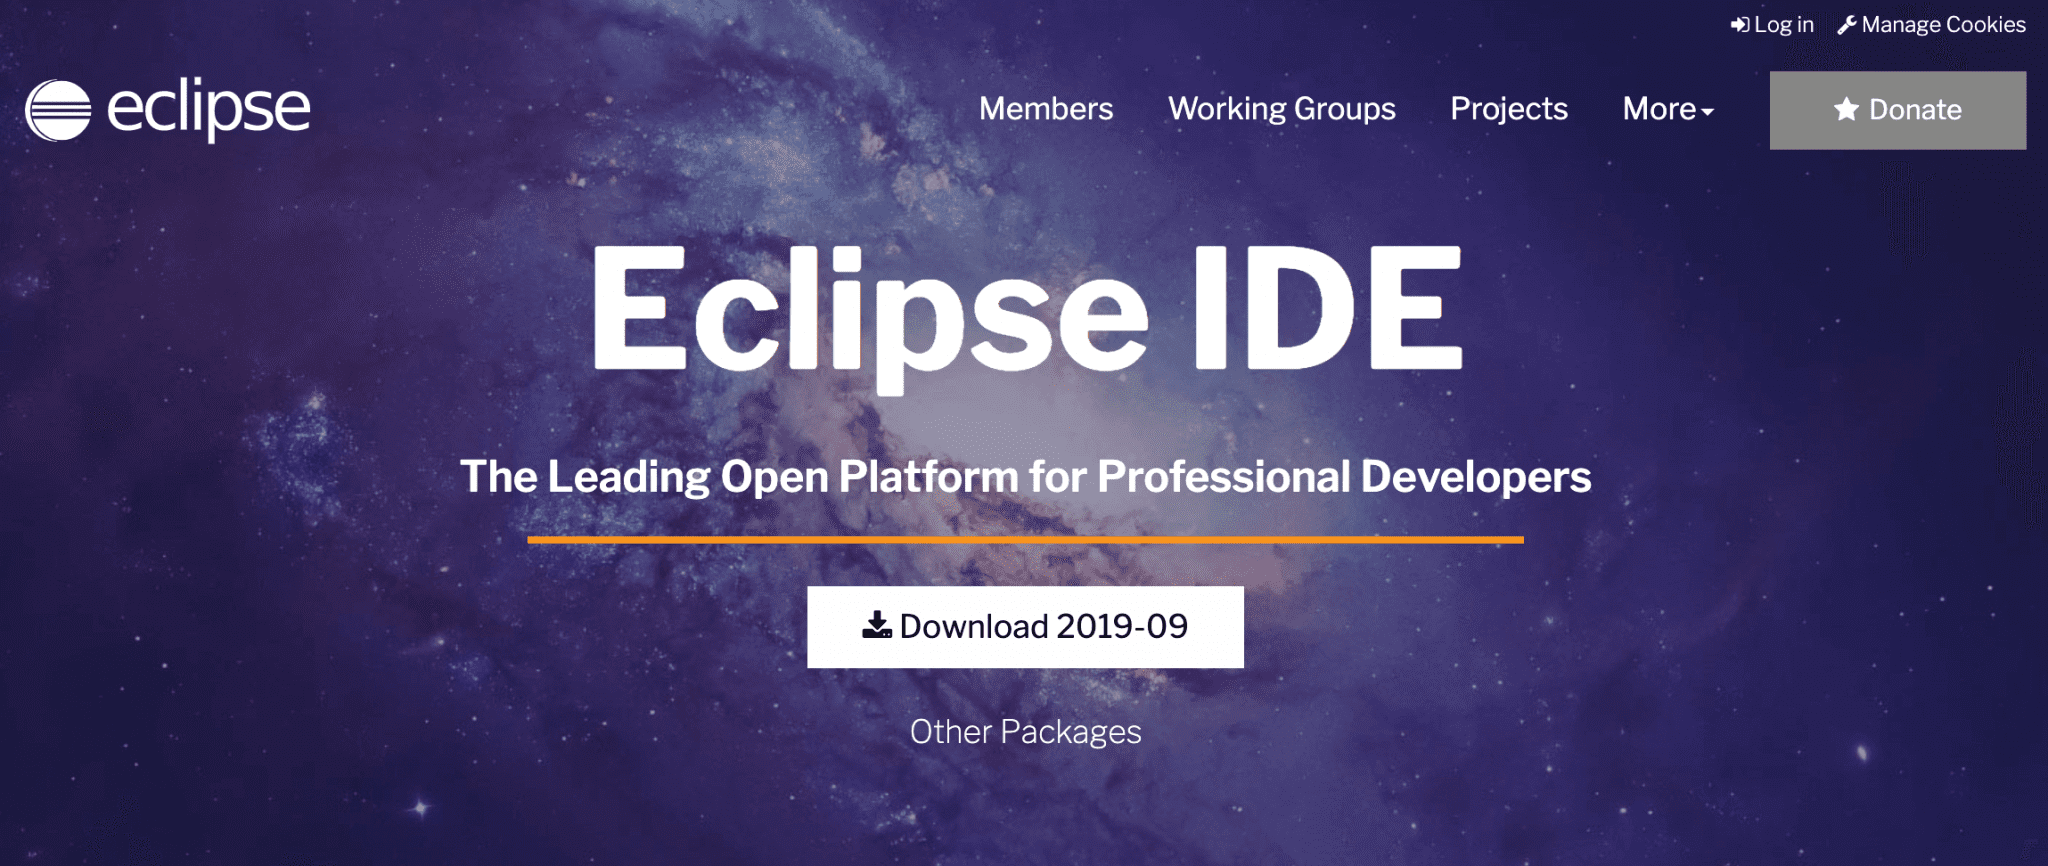 The Eclipse IDE.